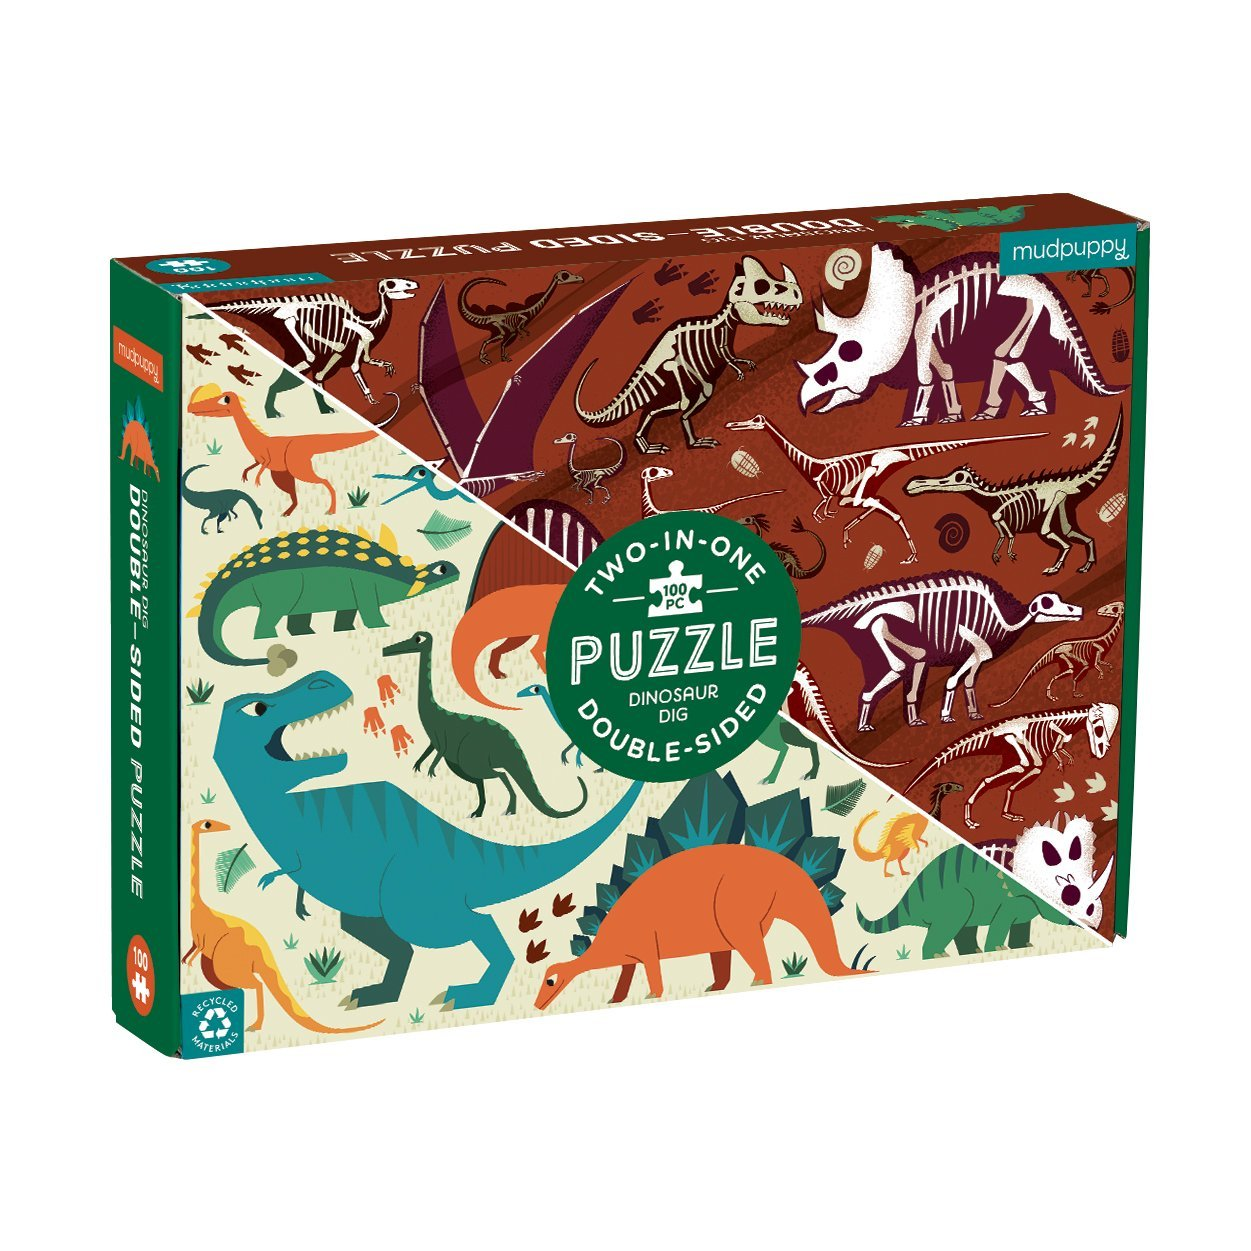 Dinosaur 100 Piece Double Sided Puzzle